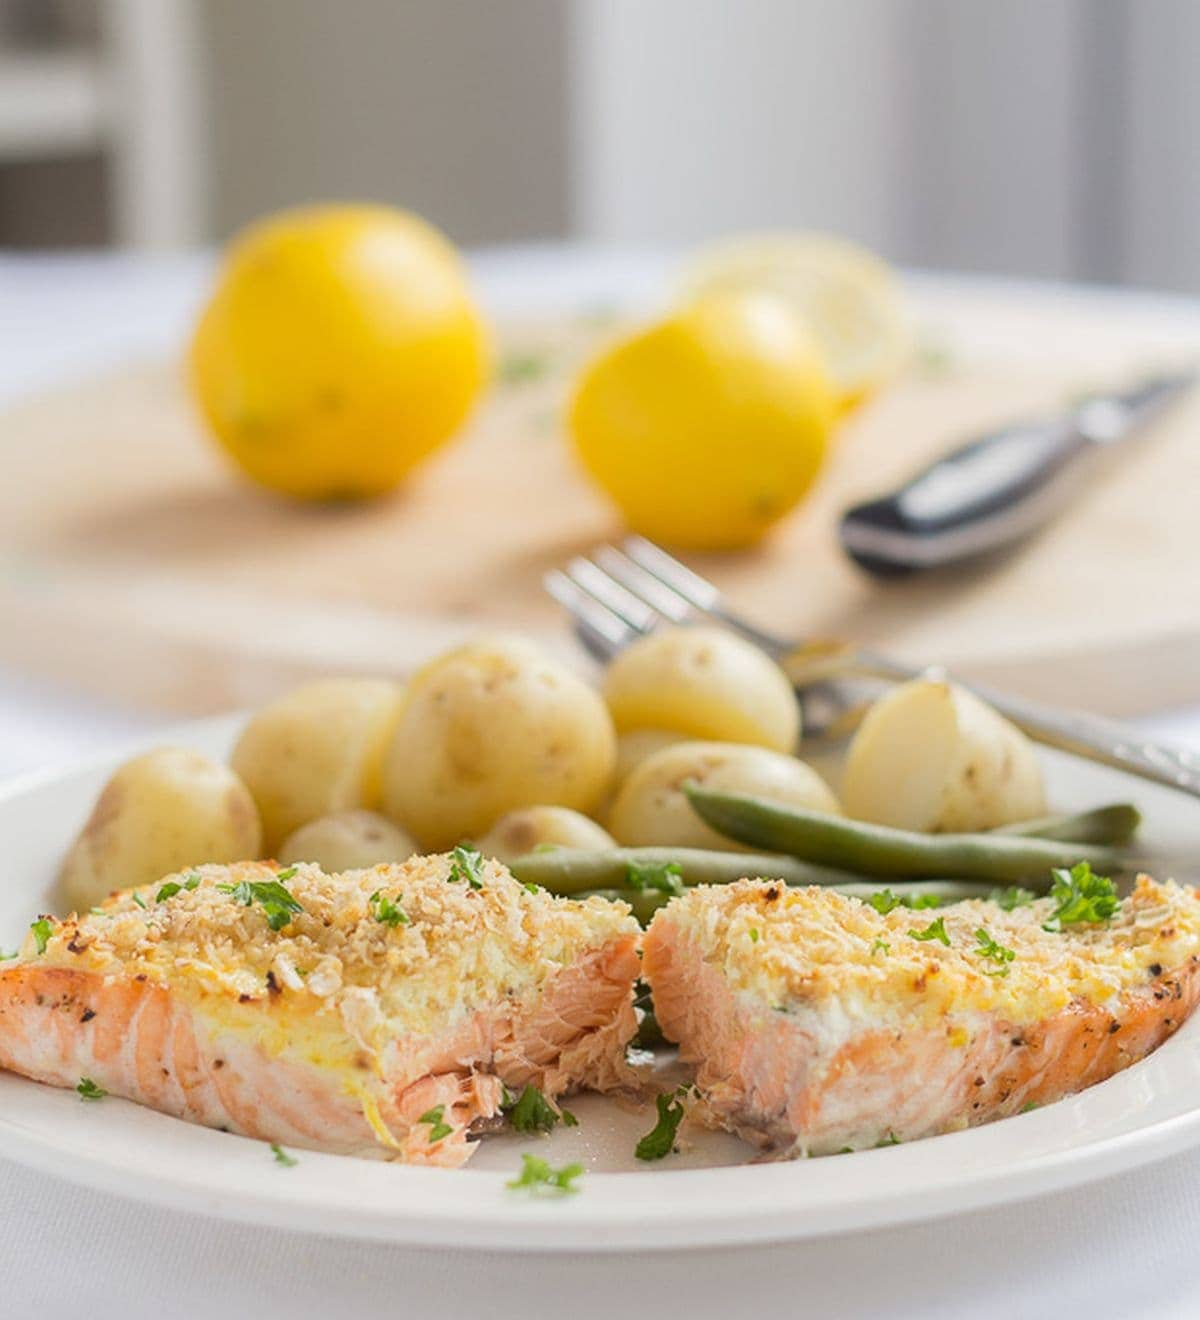 A plate with oven baked salmon with cream cheese served with baby potatoes and green beans. A chopping board with lemons on in the background.